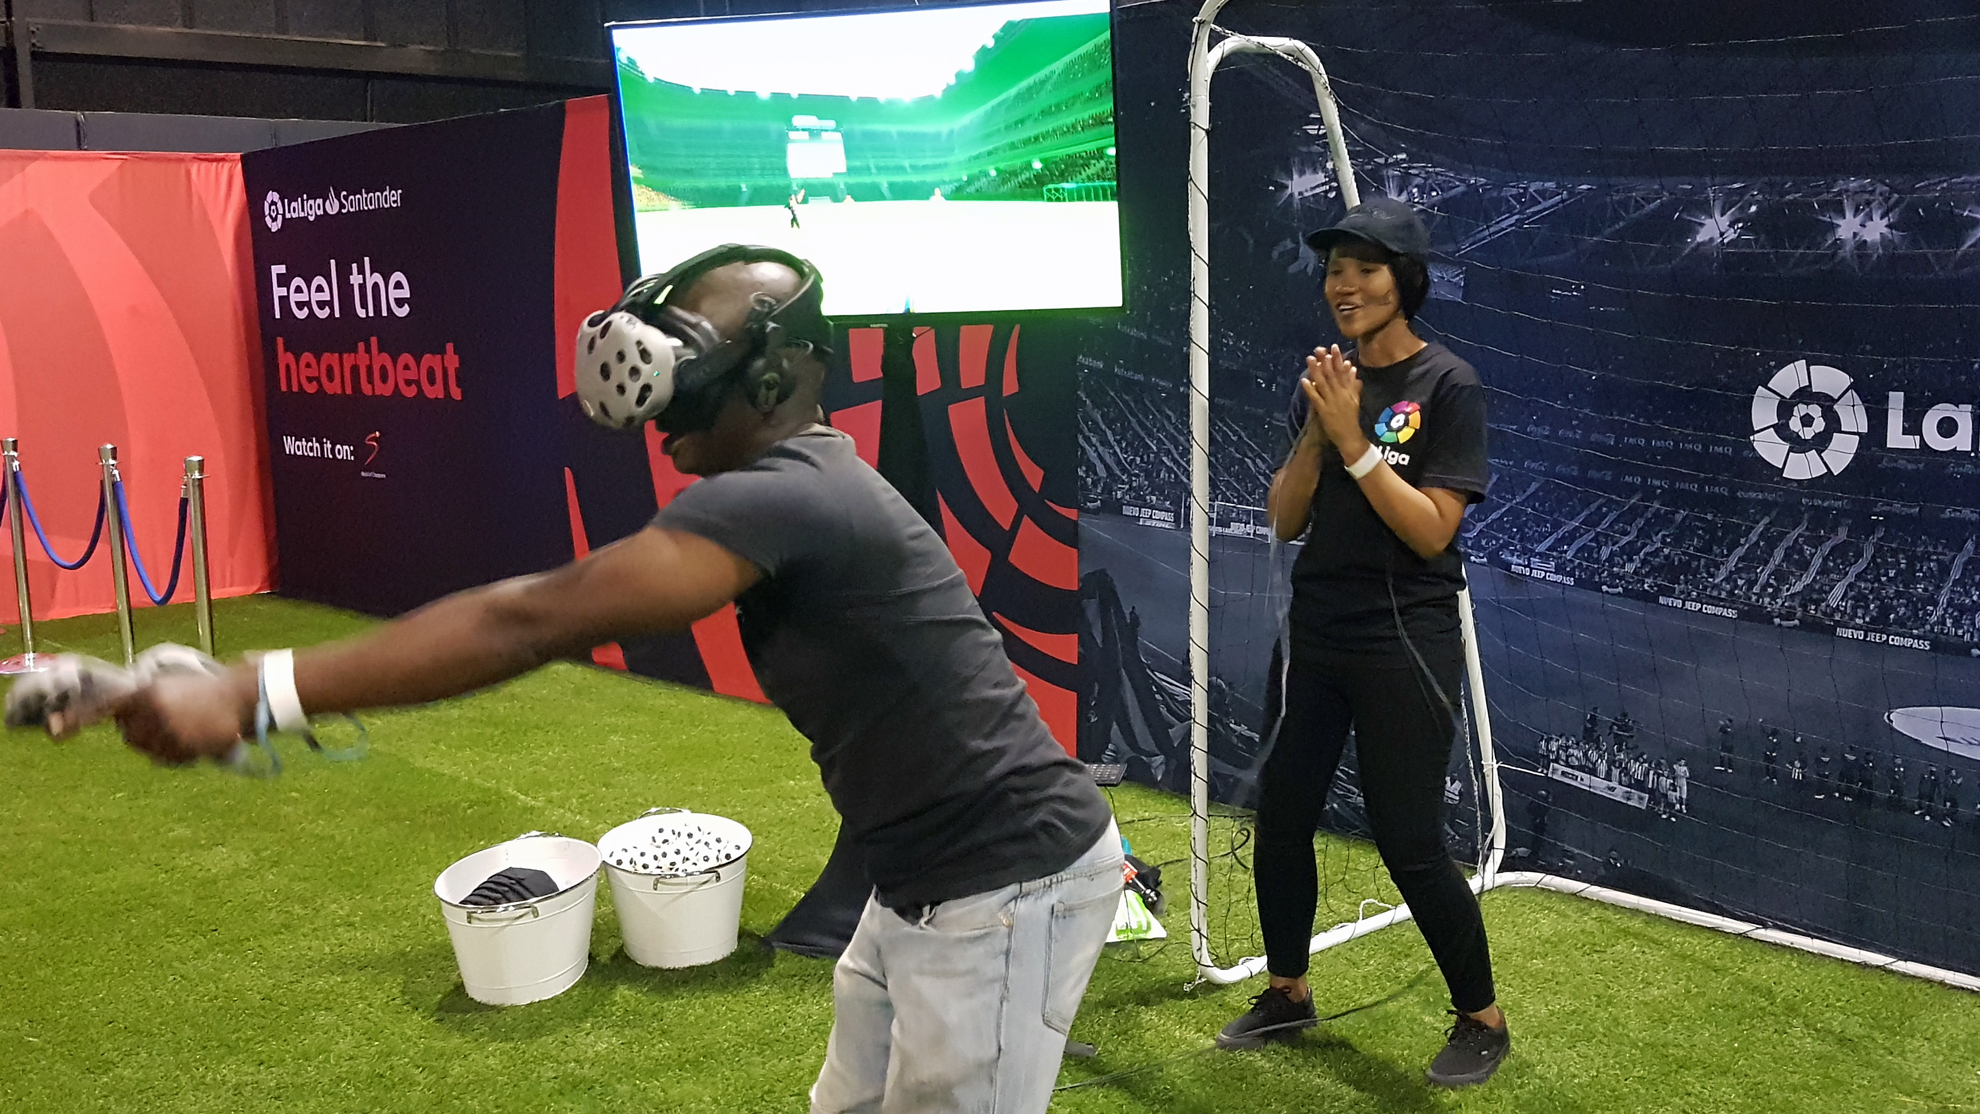 south-africa-vr-events